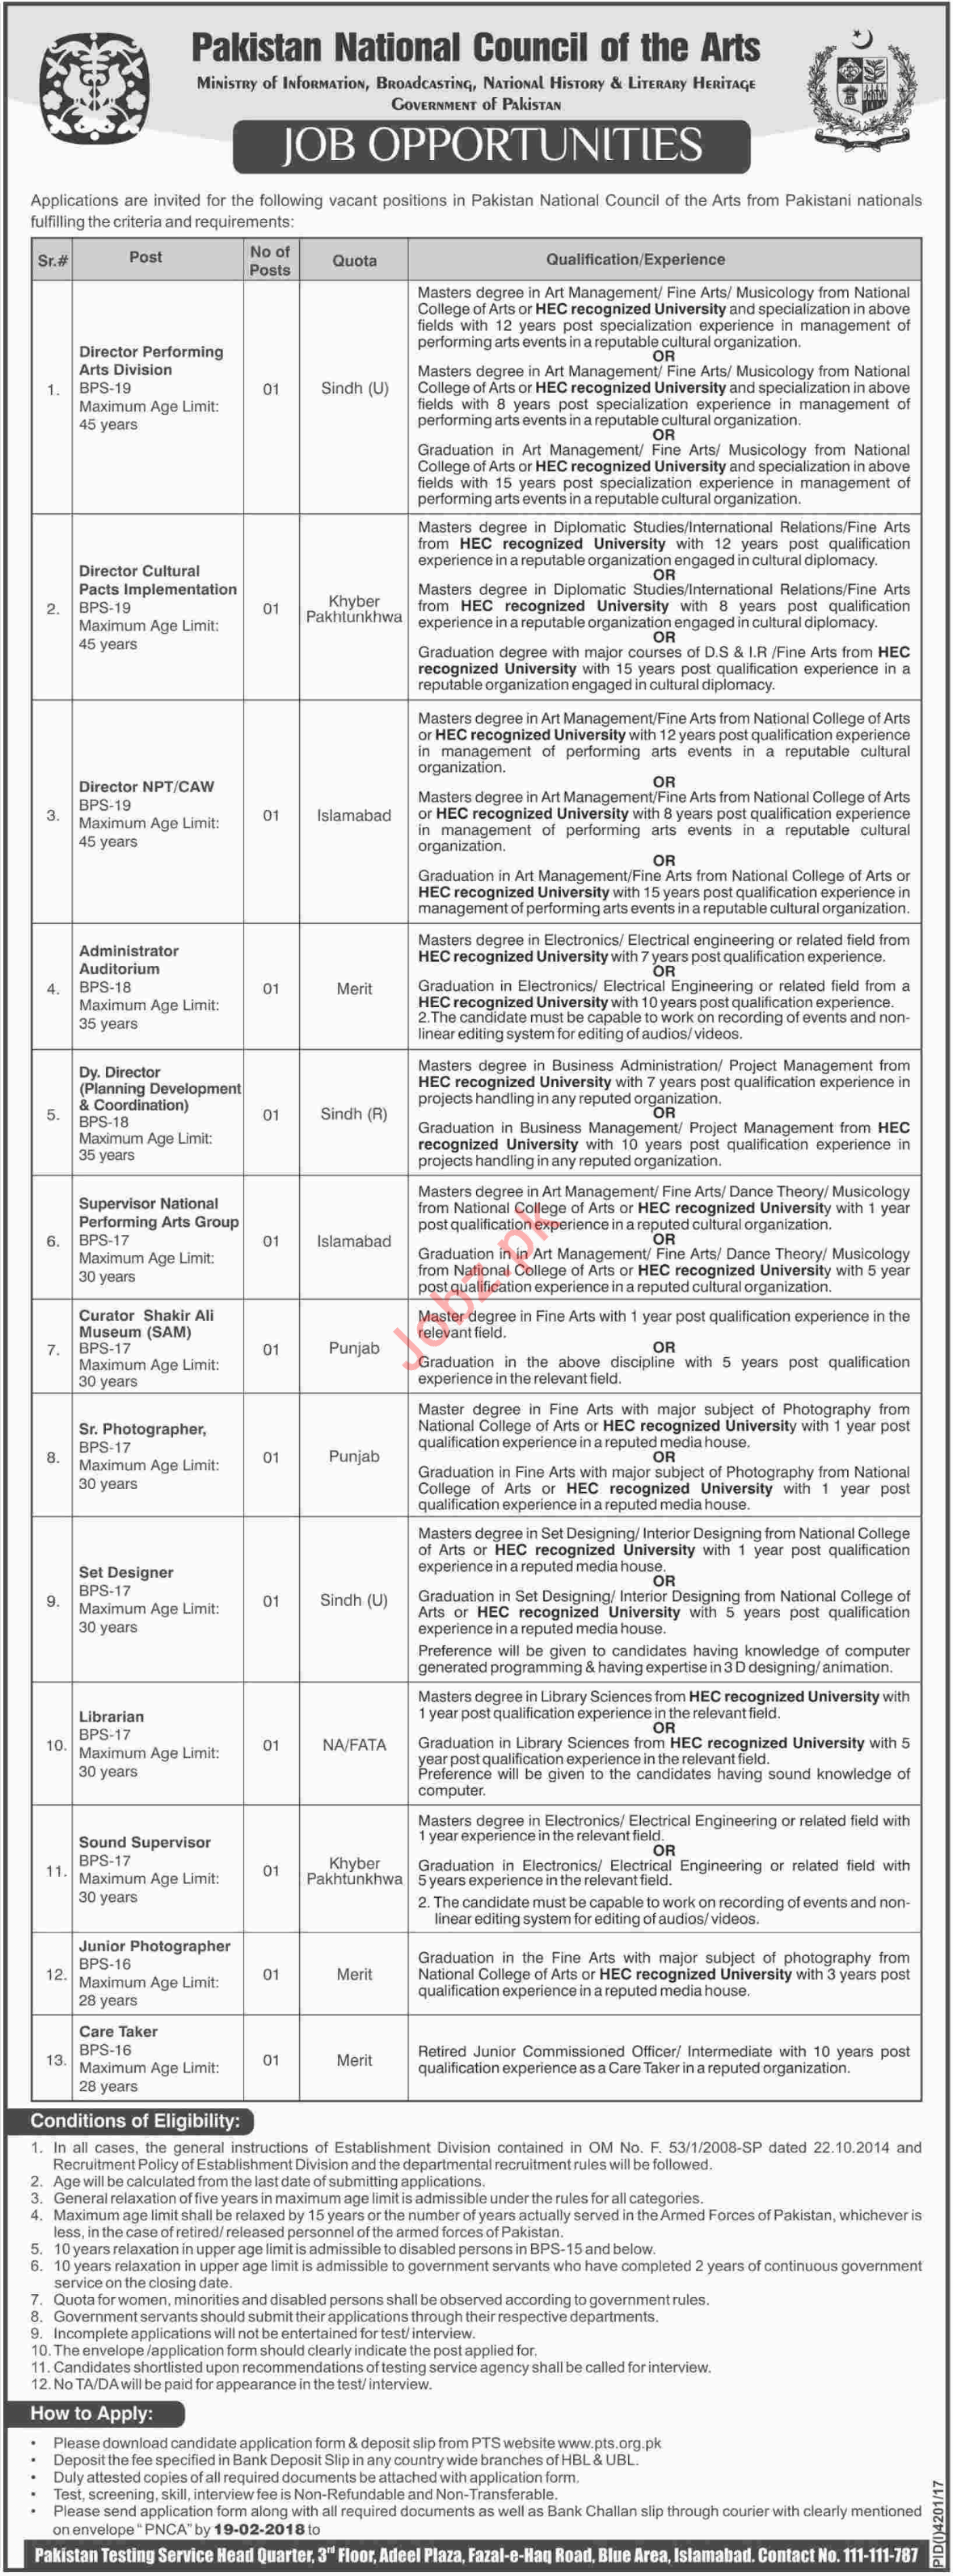 Pakistan National Council of the Arts Jobs for Director